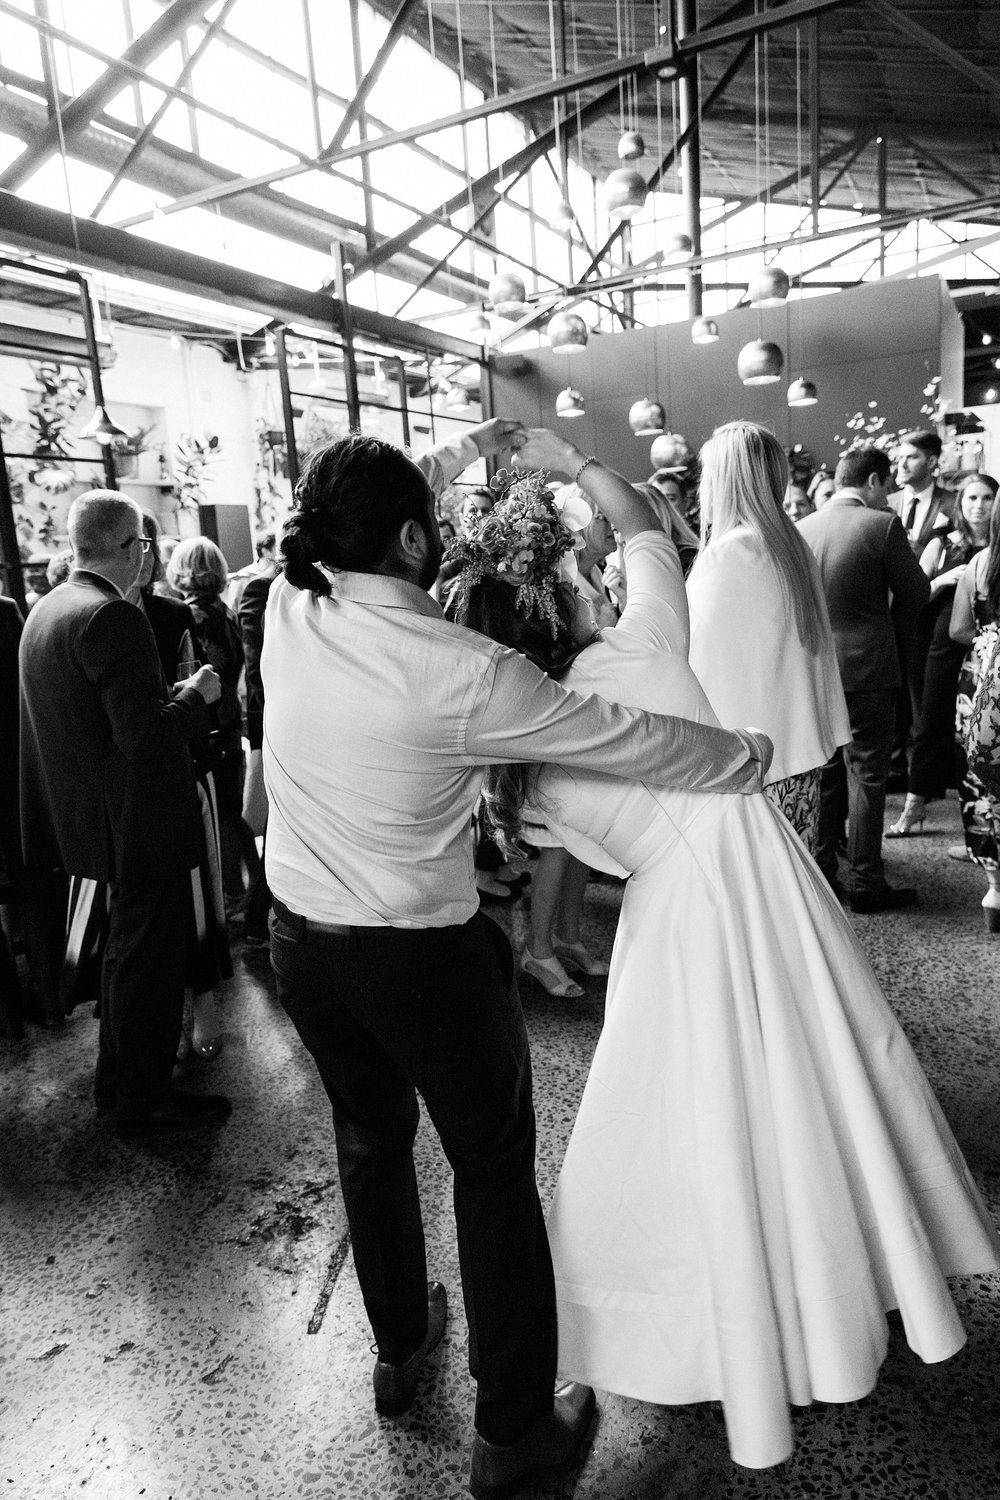 melbourne_wedding_photography_0031-min.jpg